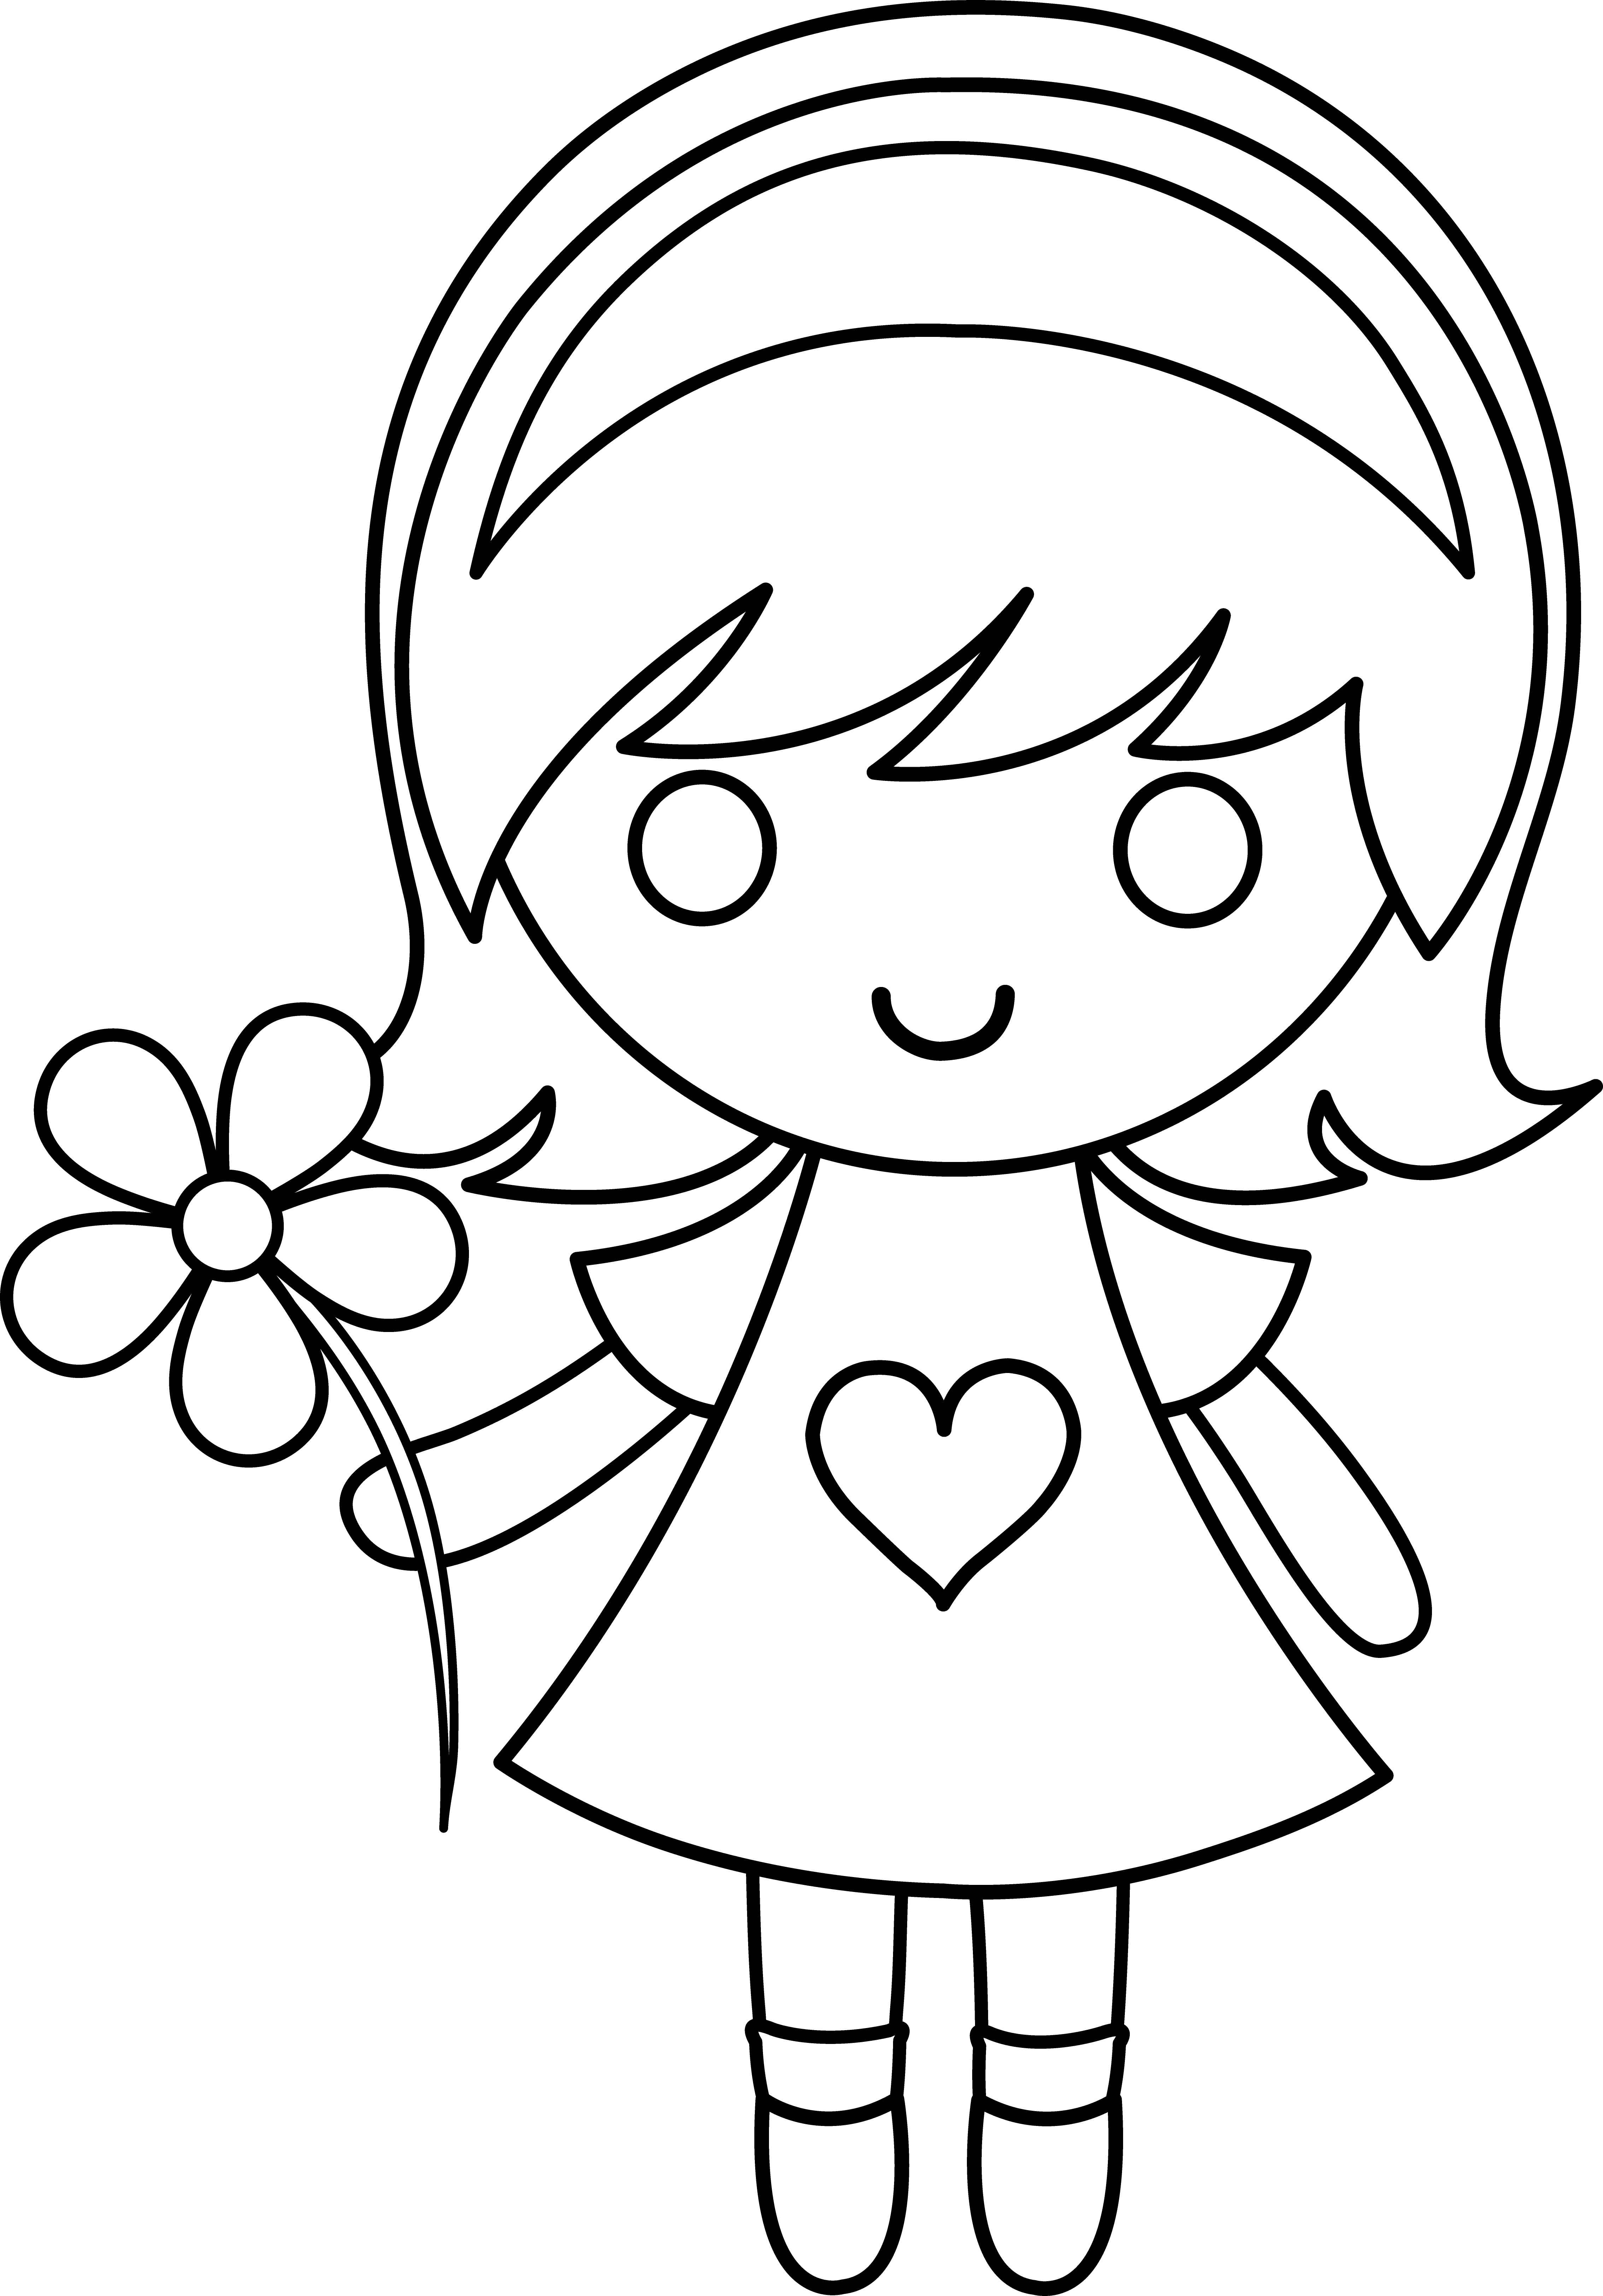 daisy girl colorable line art free clip art and coloring pages rh pinterest com